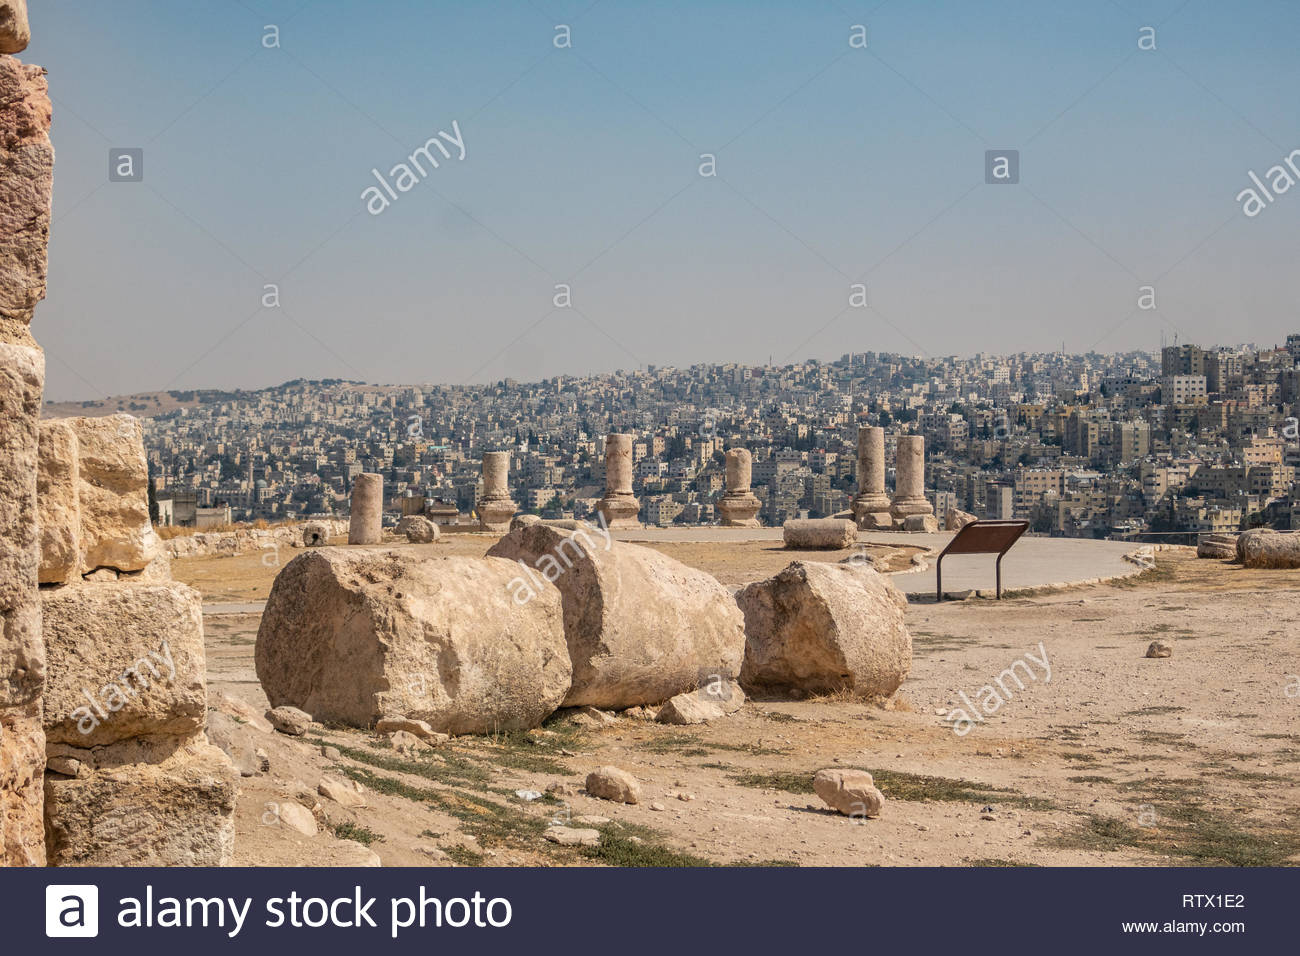 View towards the southern neighbourhoods of Amman, Jordan, from the historic Citadel. Showing remains of Roman architecture. - Stock Image